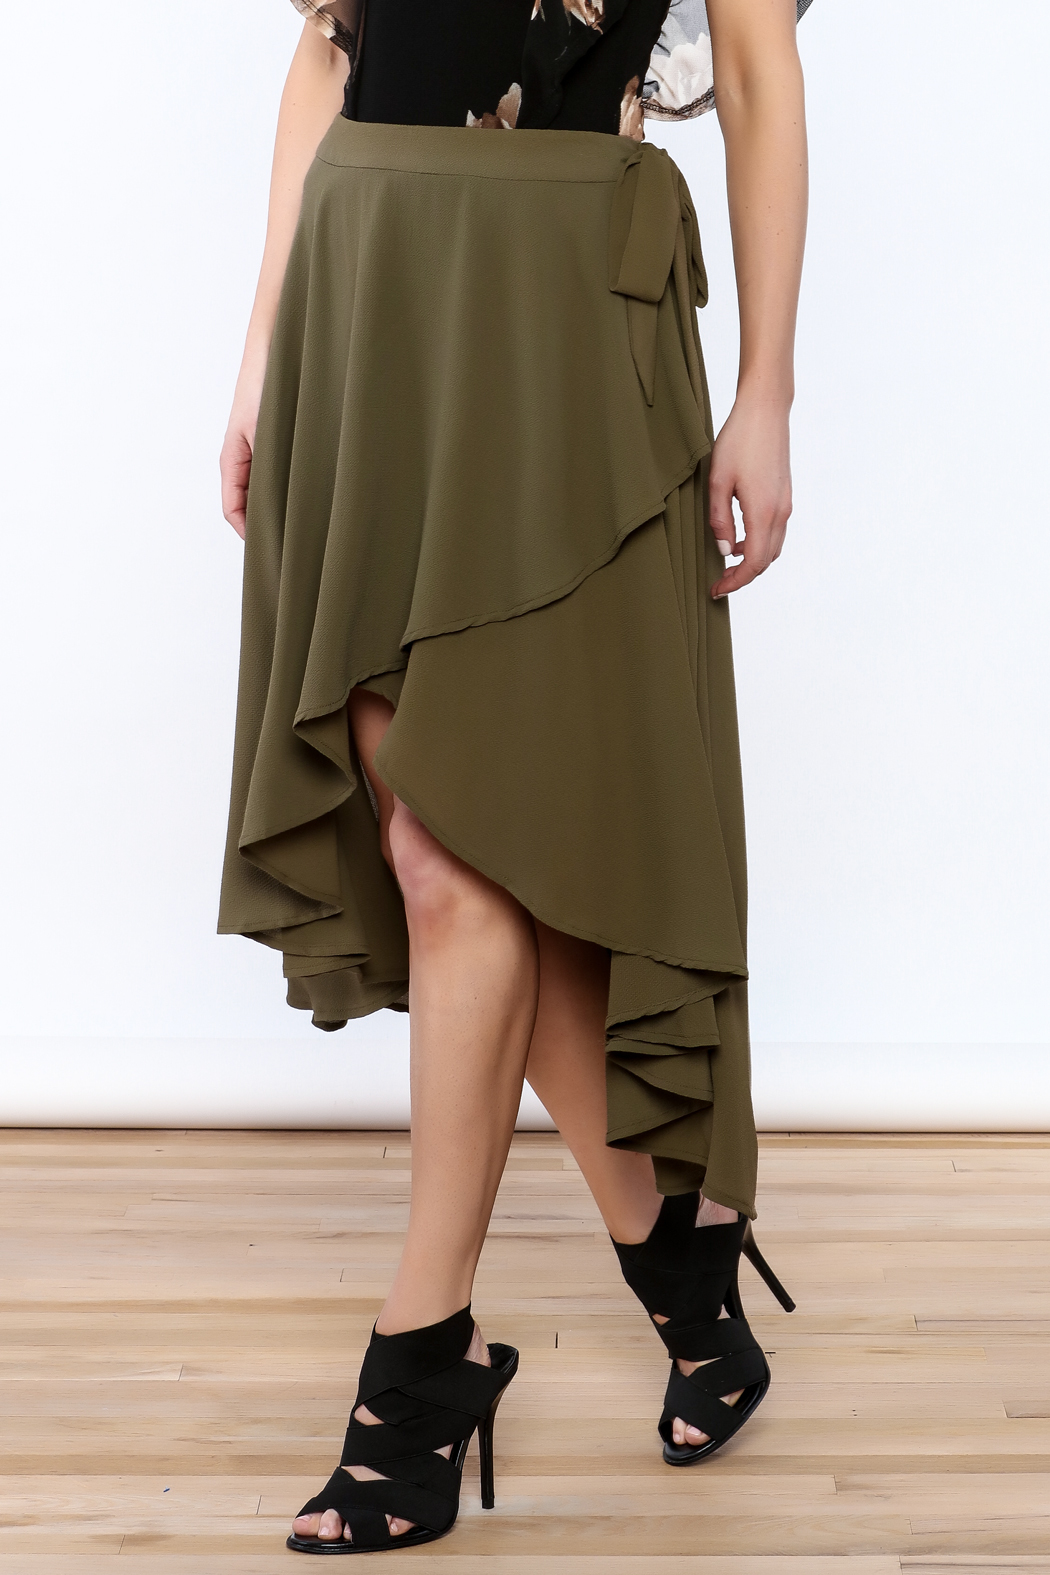 She + Sky Olive Green Midi Skirt - Main Image